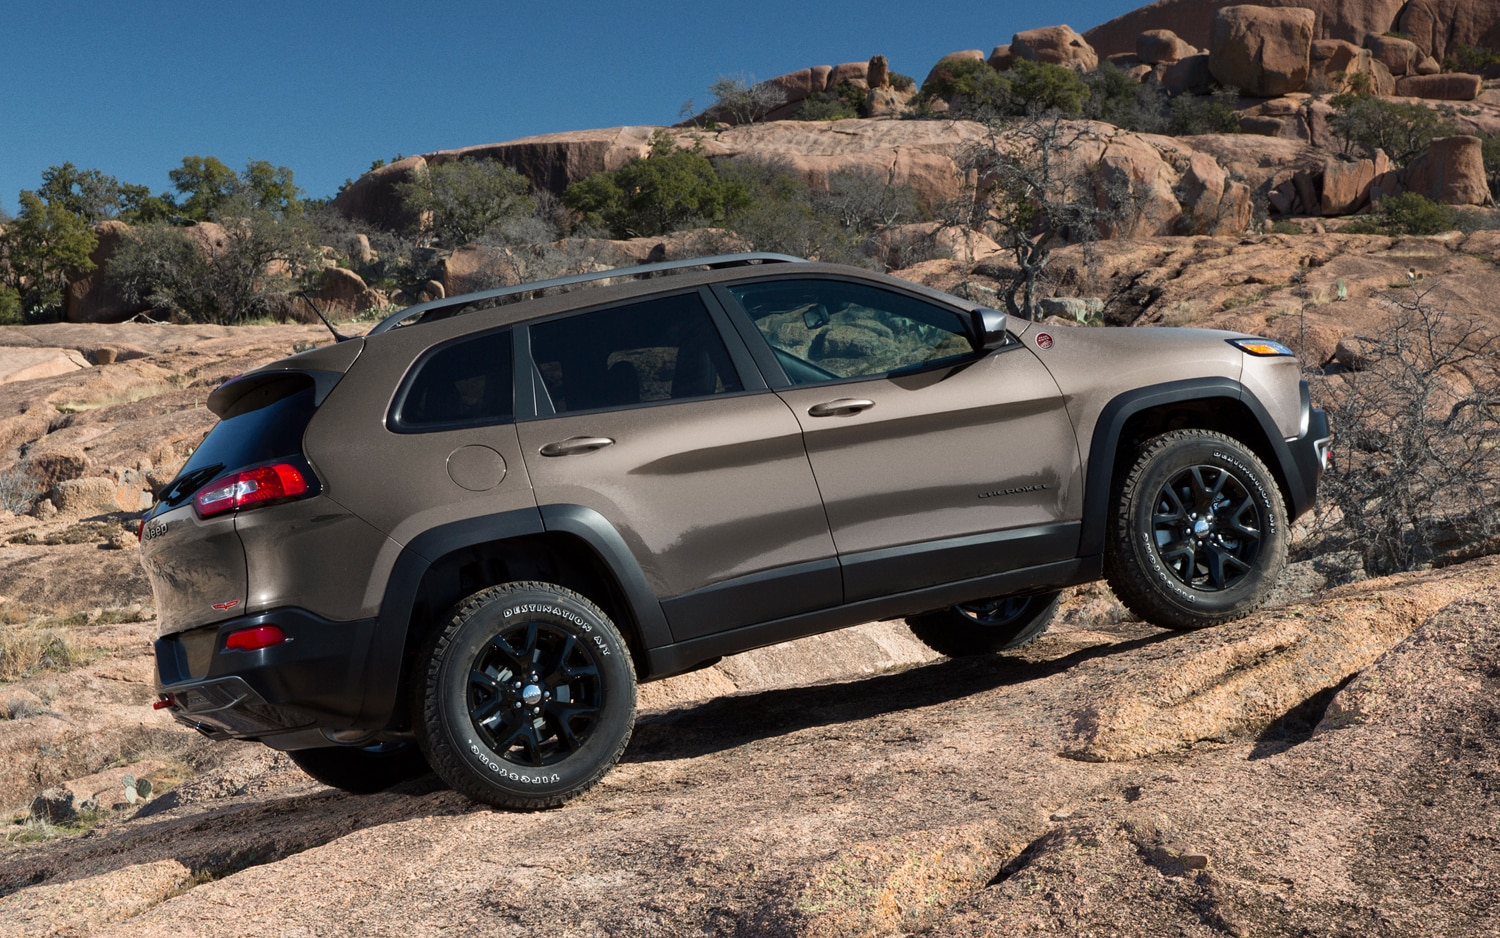 2014 Jeep Cherokee Trailhawk read side view